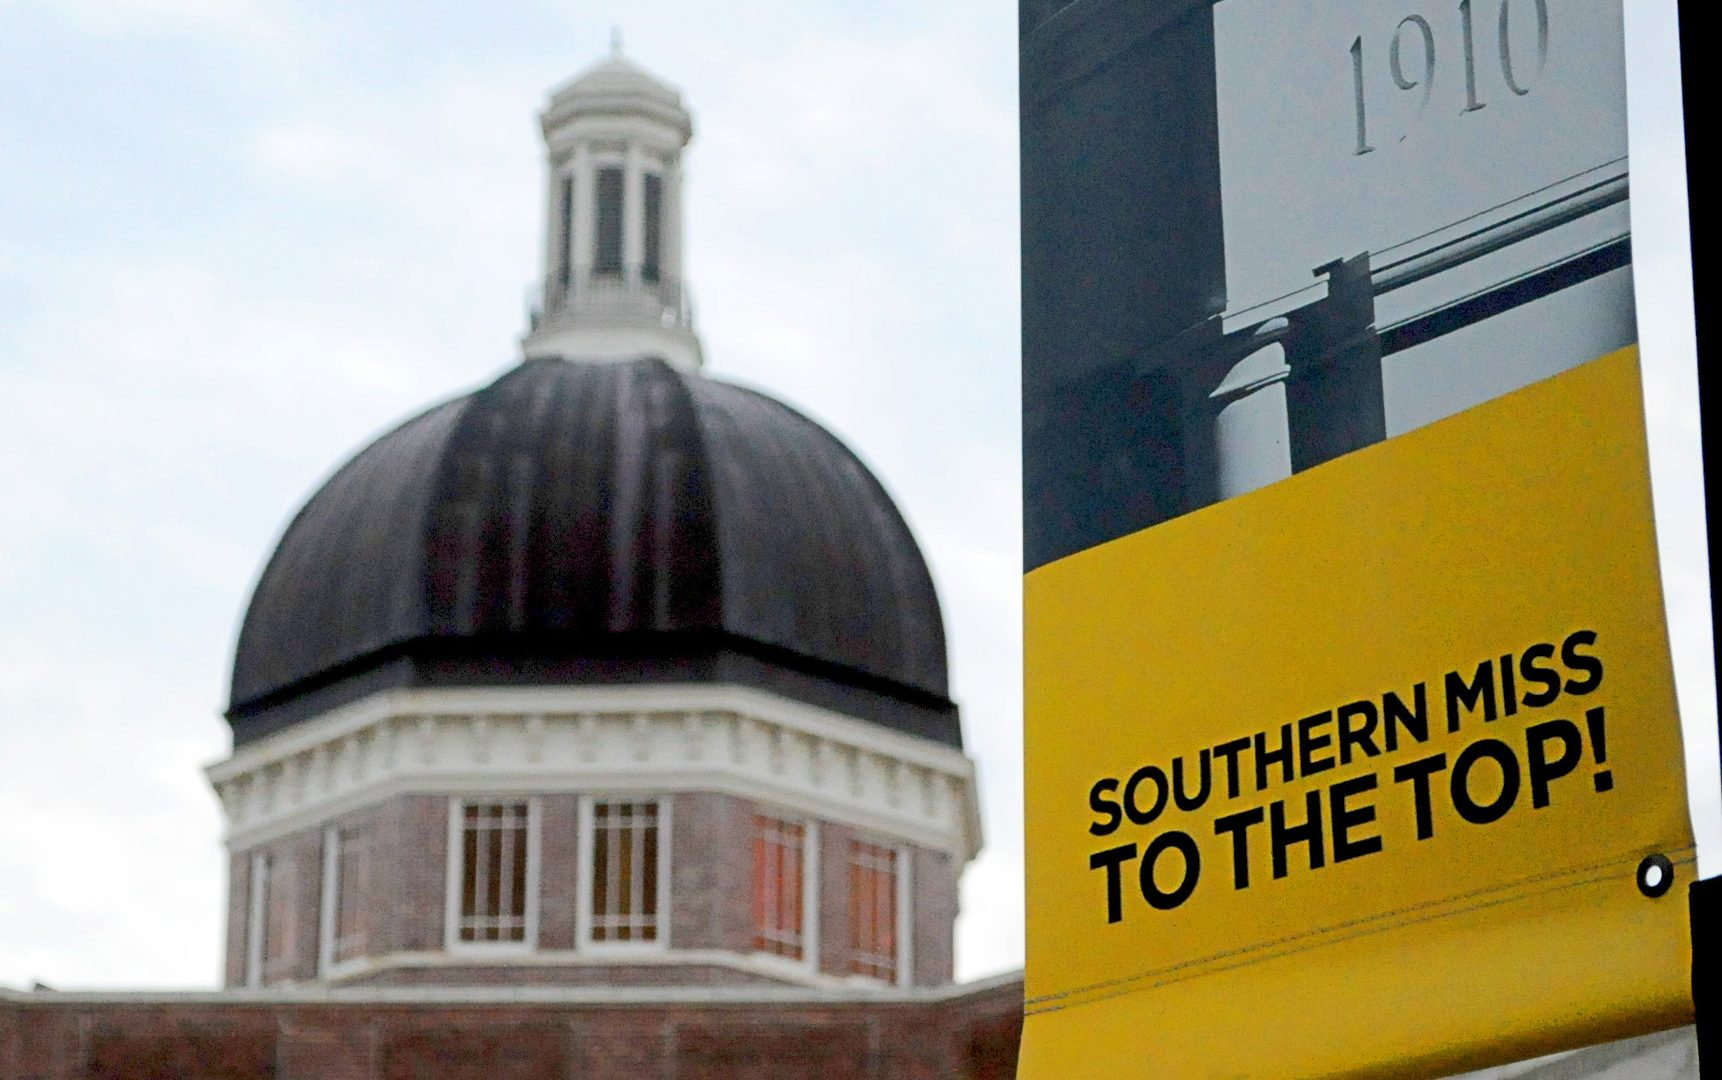 An open letter to USM